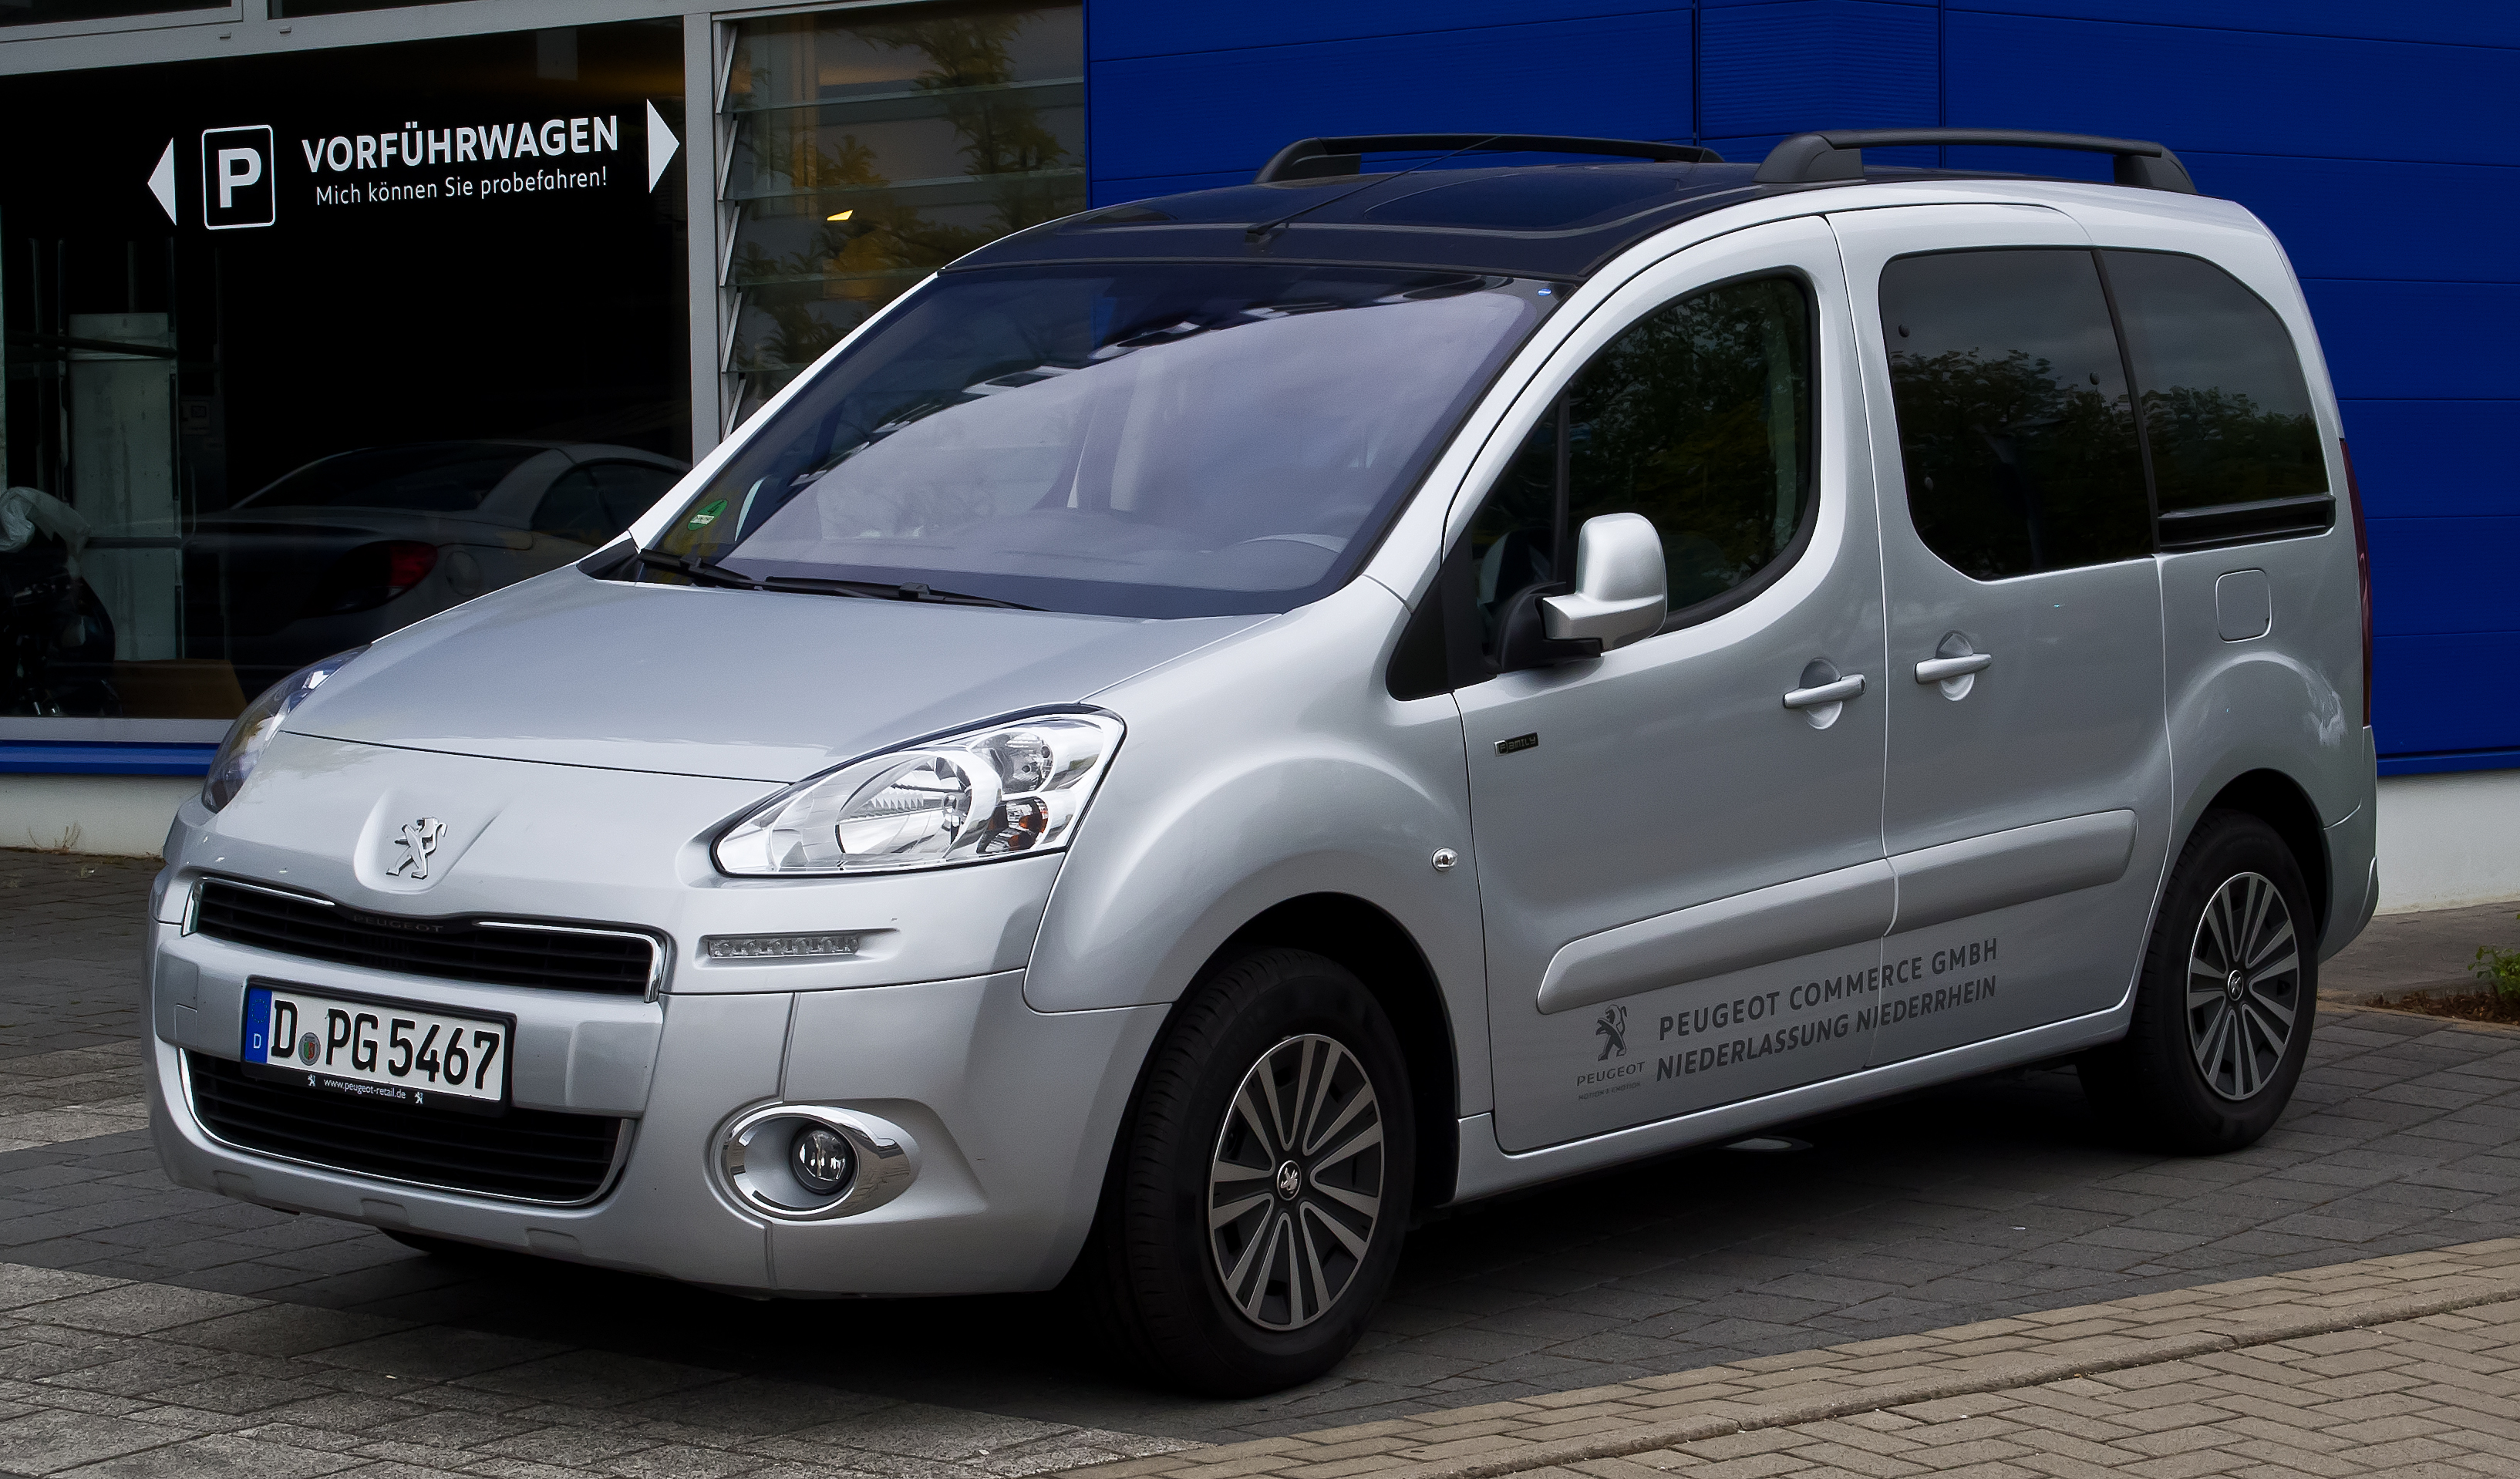 peugeot partner ii 2006 models #9